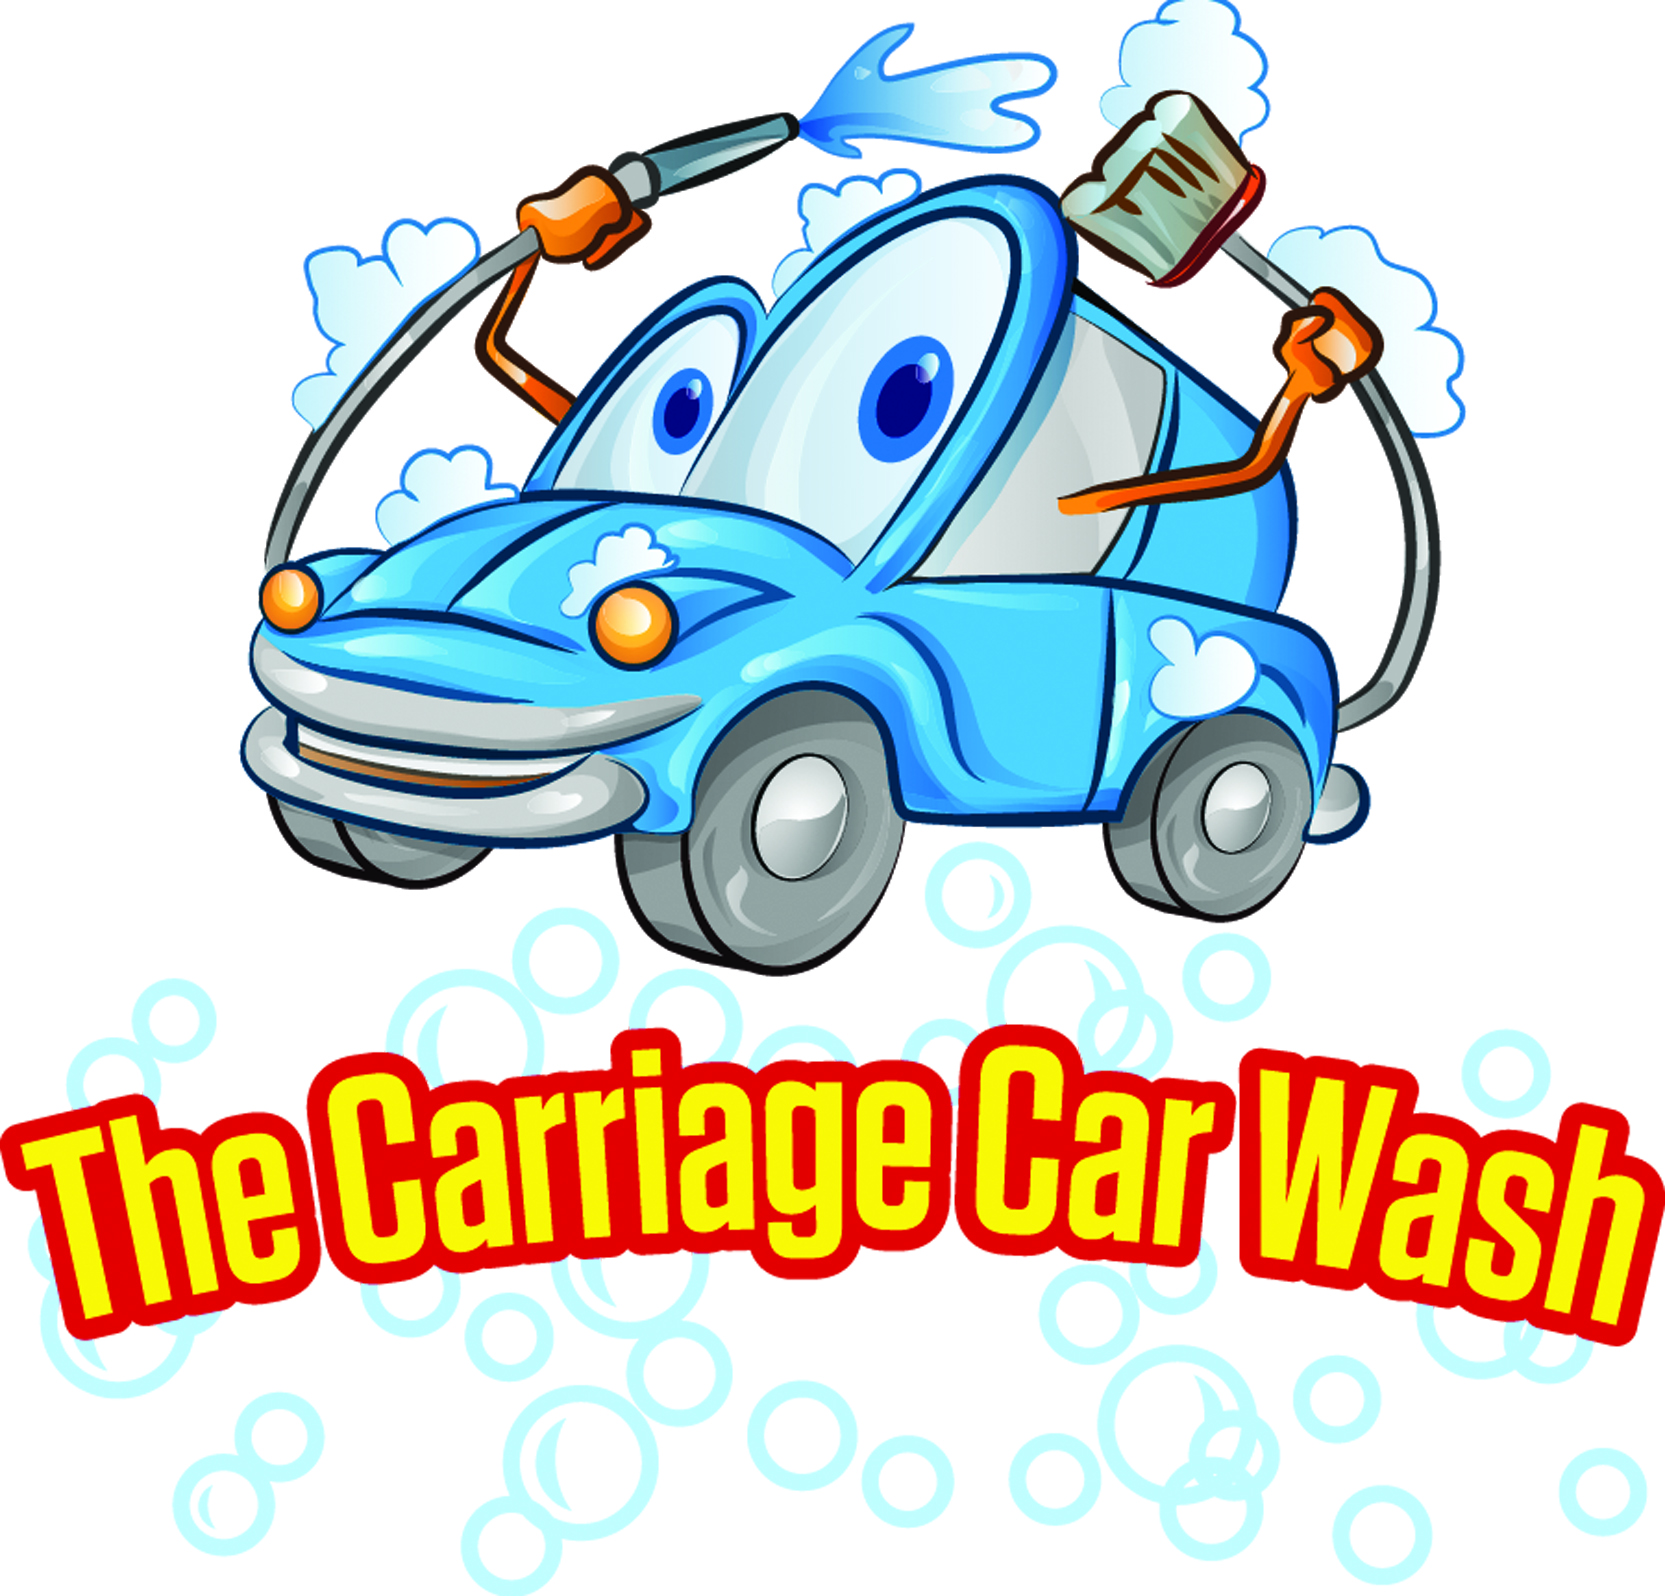 Carriage Car Wash & Detail Center, Inc